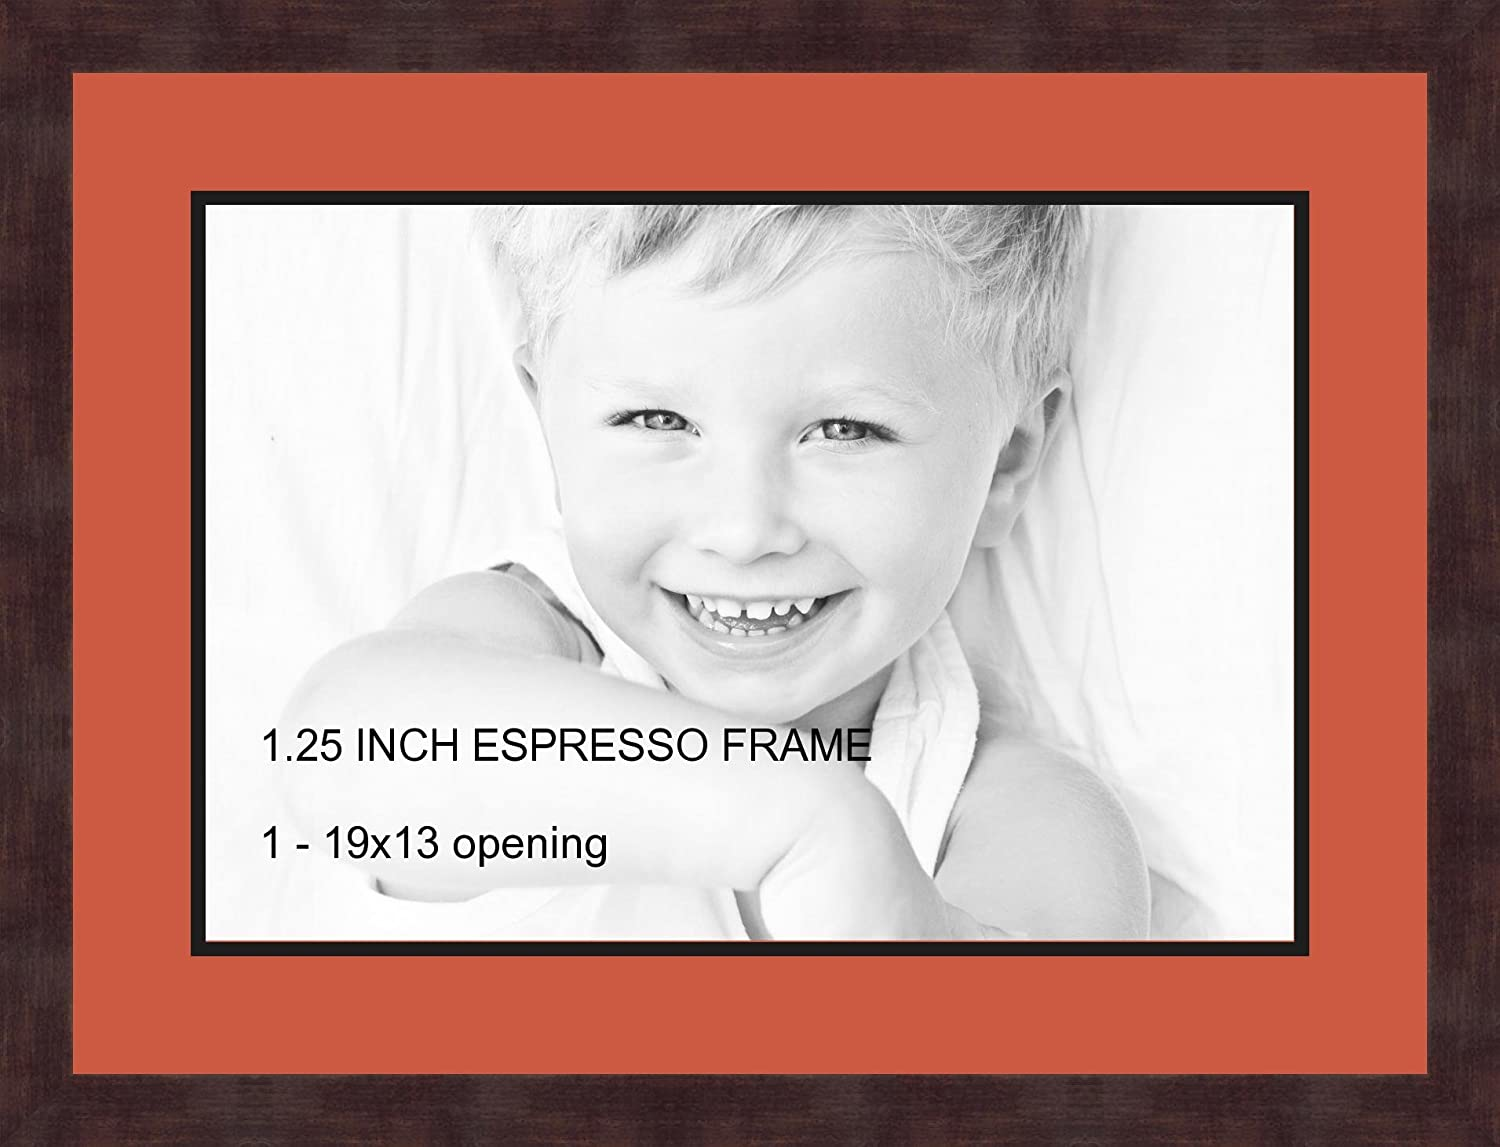 Art to Frames Double-Multimat-730-693 89-FRBW26061 Collage Frame Photo Mat Double Mat with 1-13x19 Openings and Espresso Frame